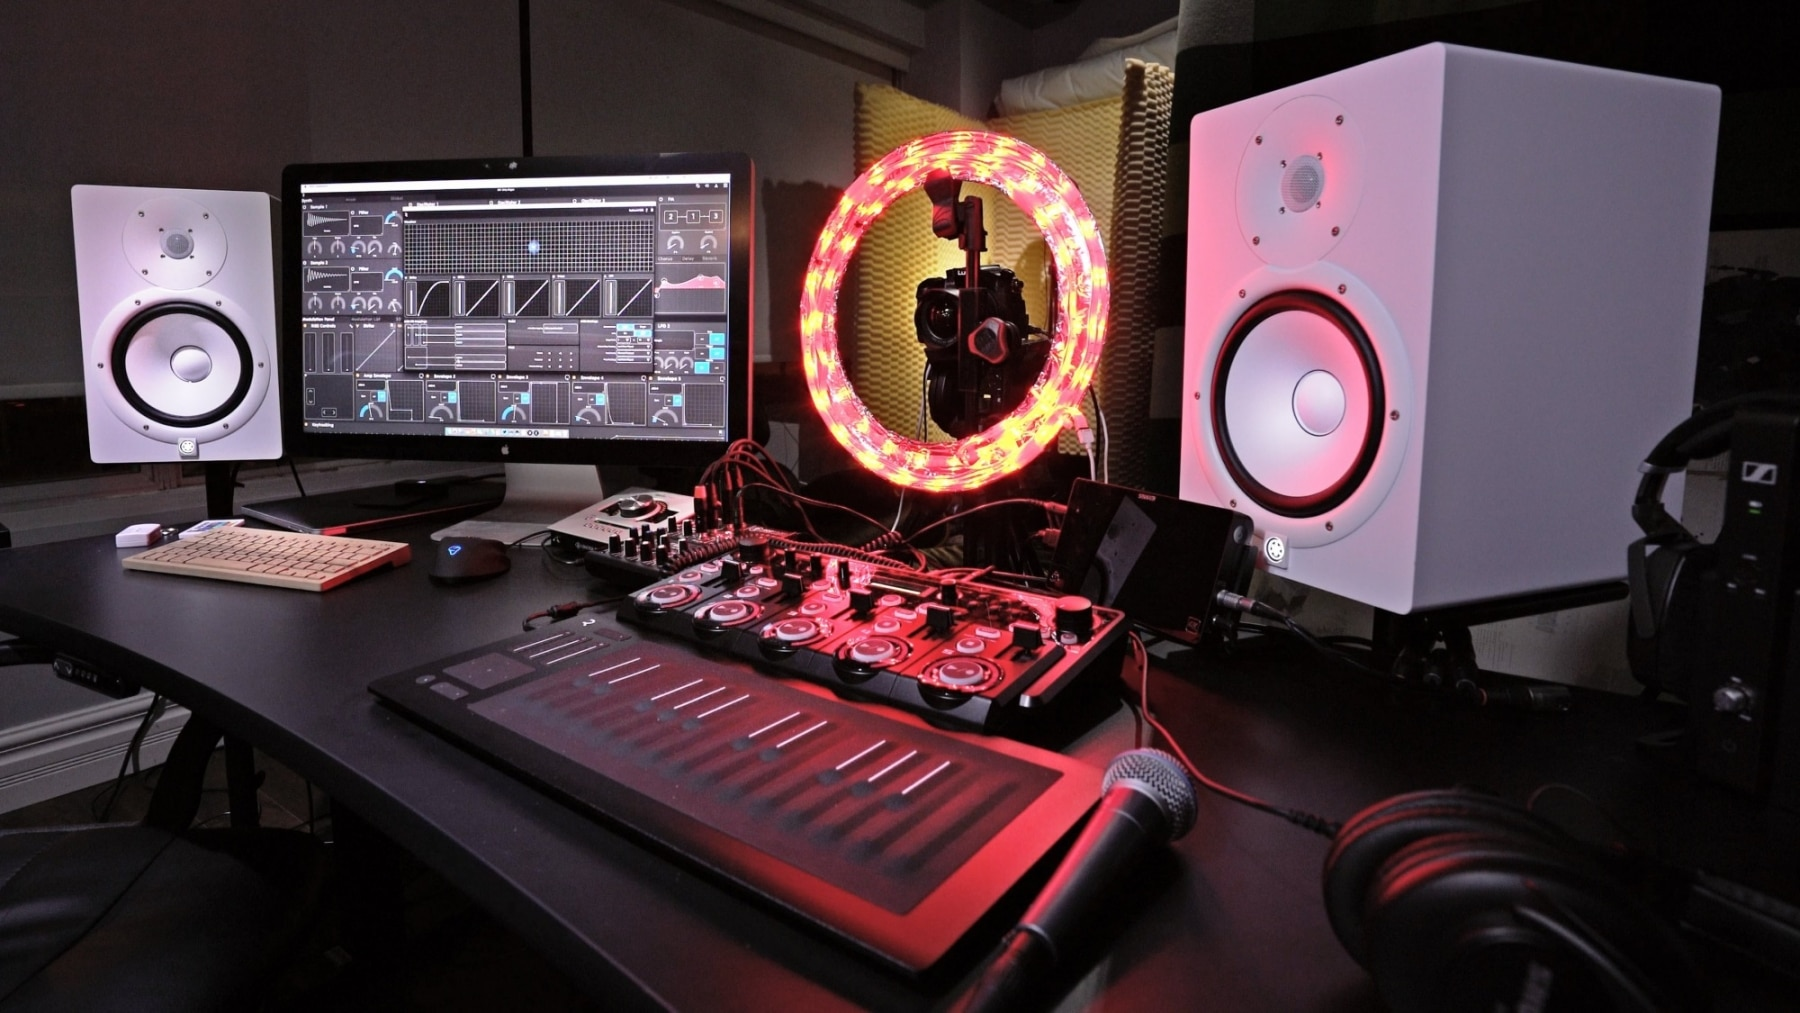 Bad Pc Setup Unbox Therapys Music Rig Desk Setup And Gear Man Of Many